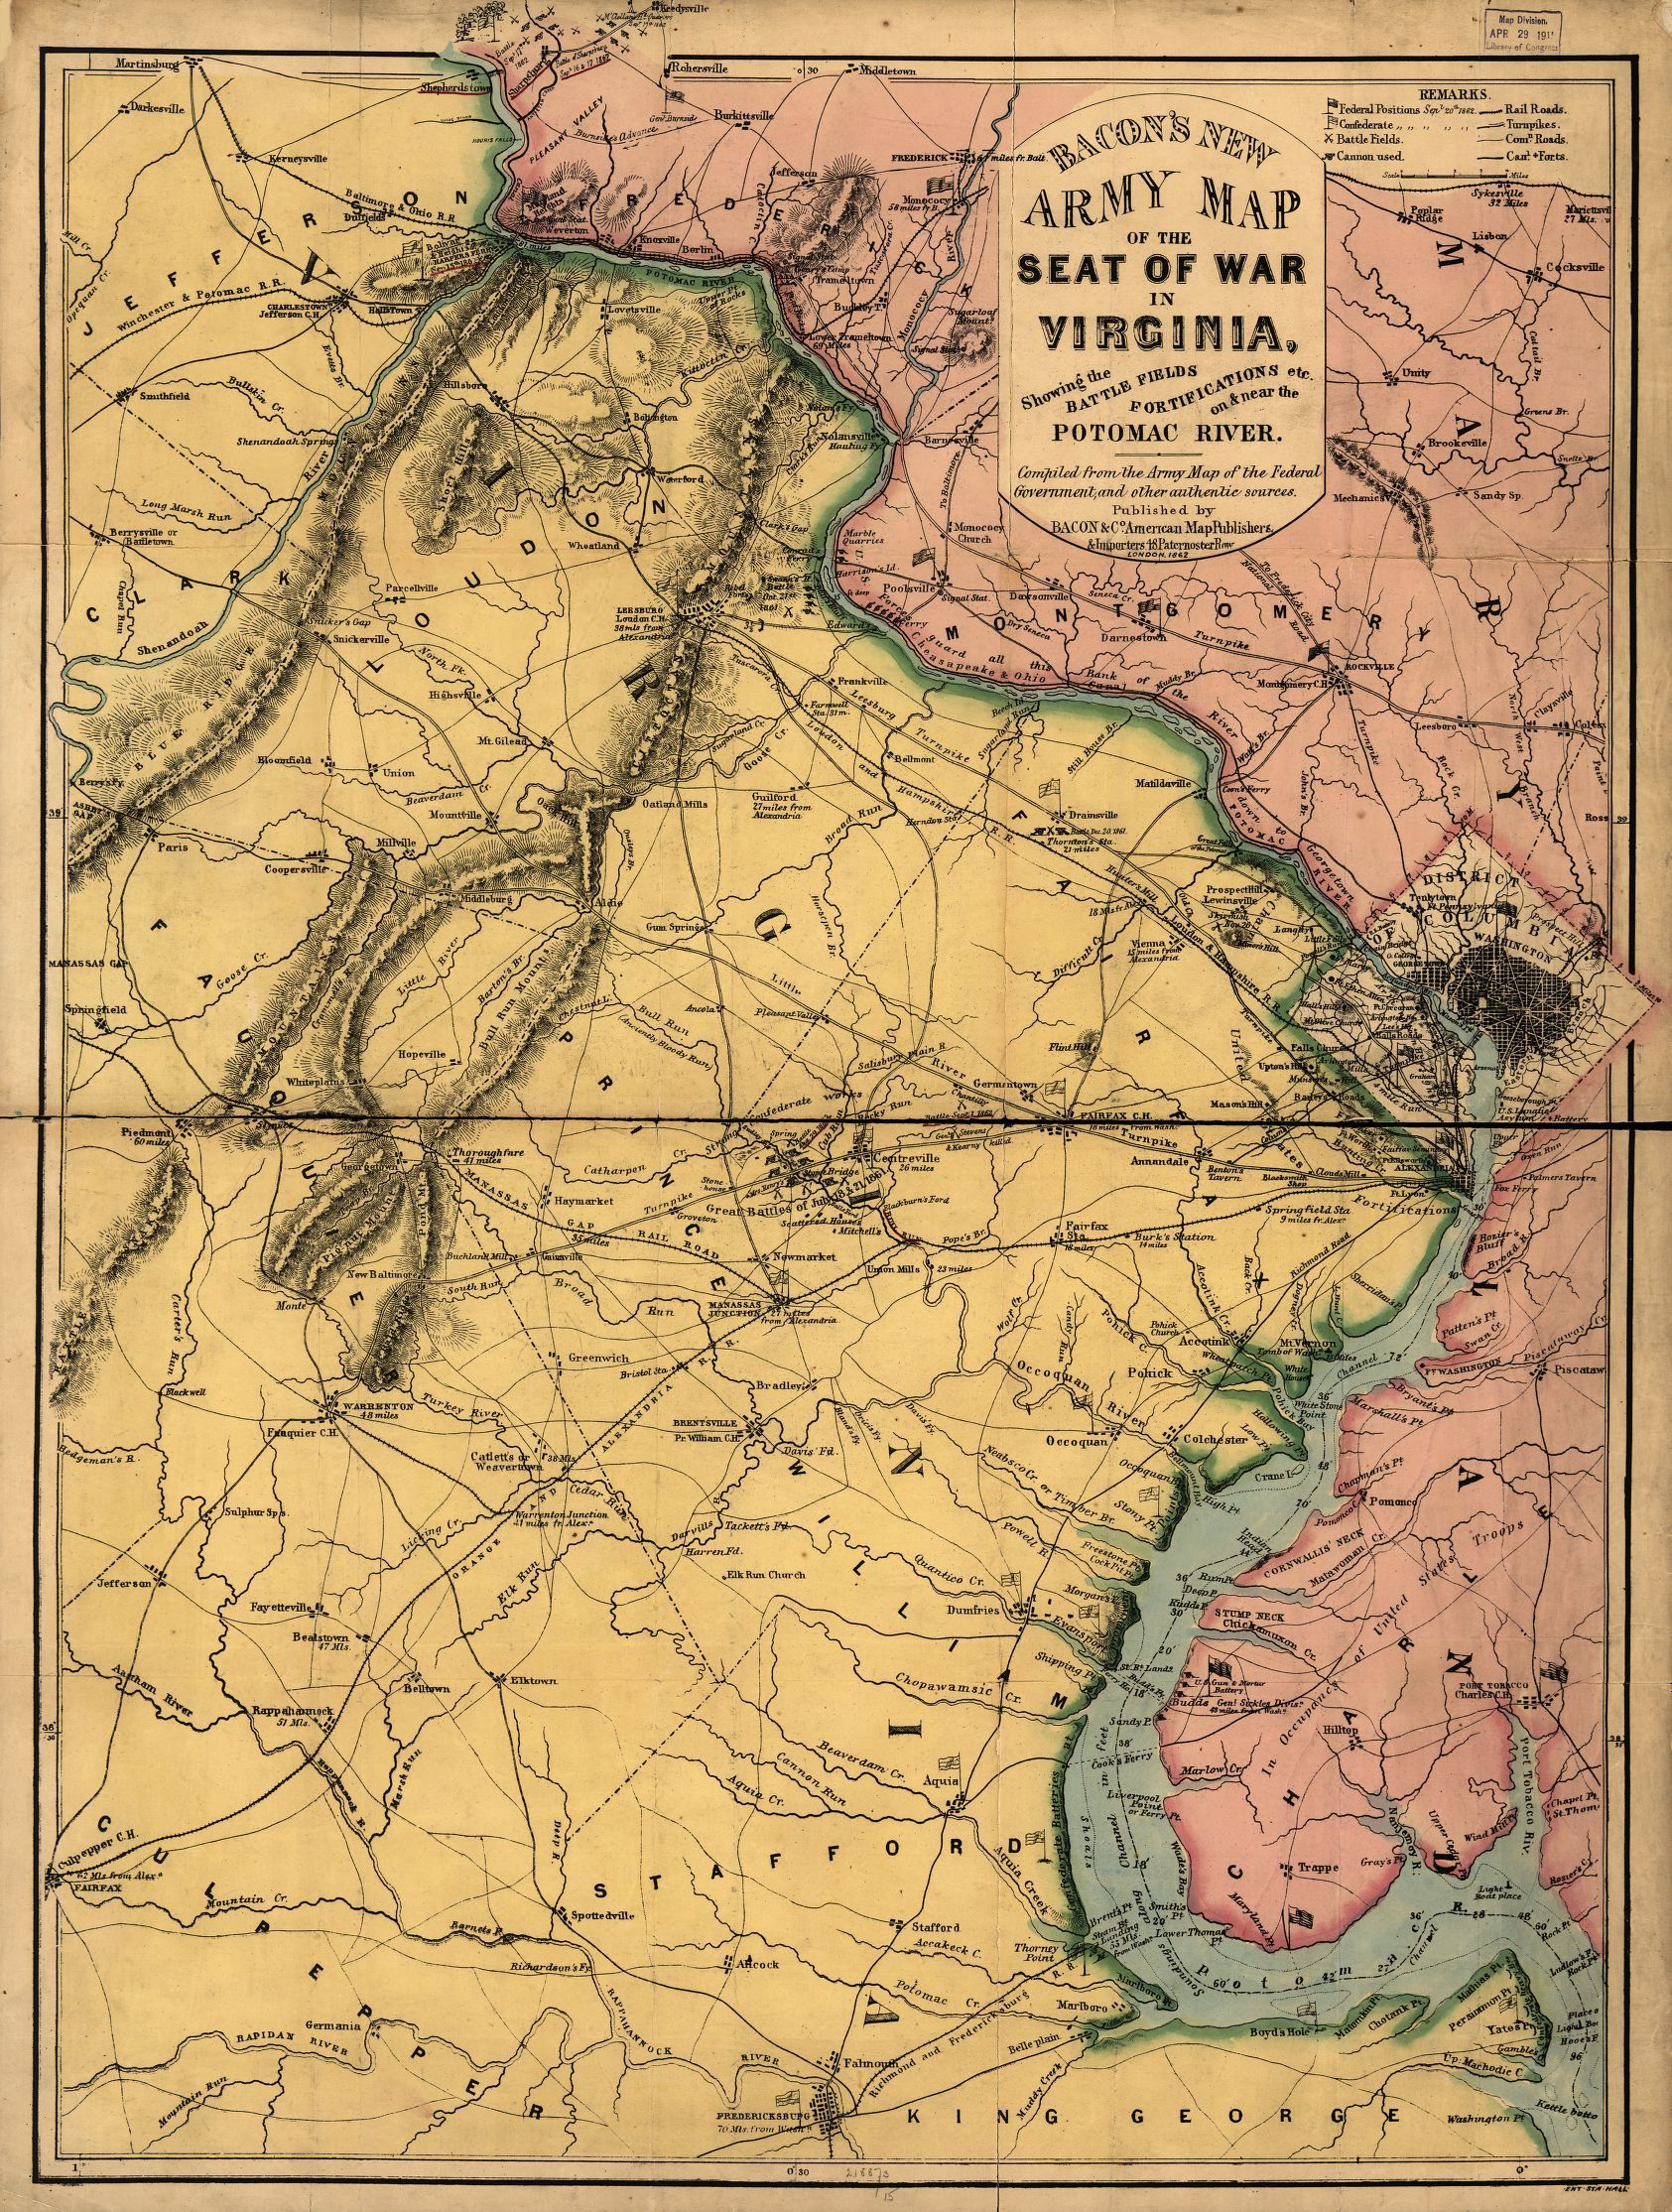 Bacons New Army Map Of The Seat Of War In Virginia Showing The - Washington dc map civil war